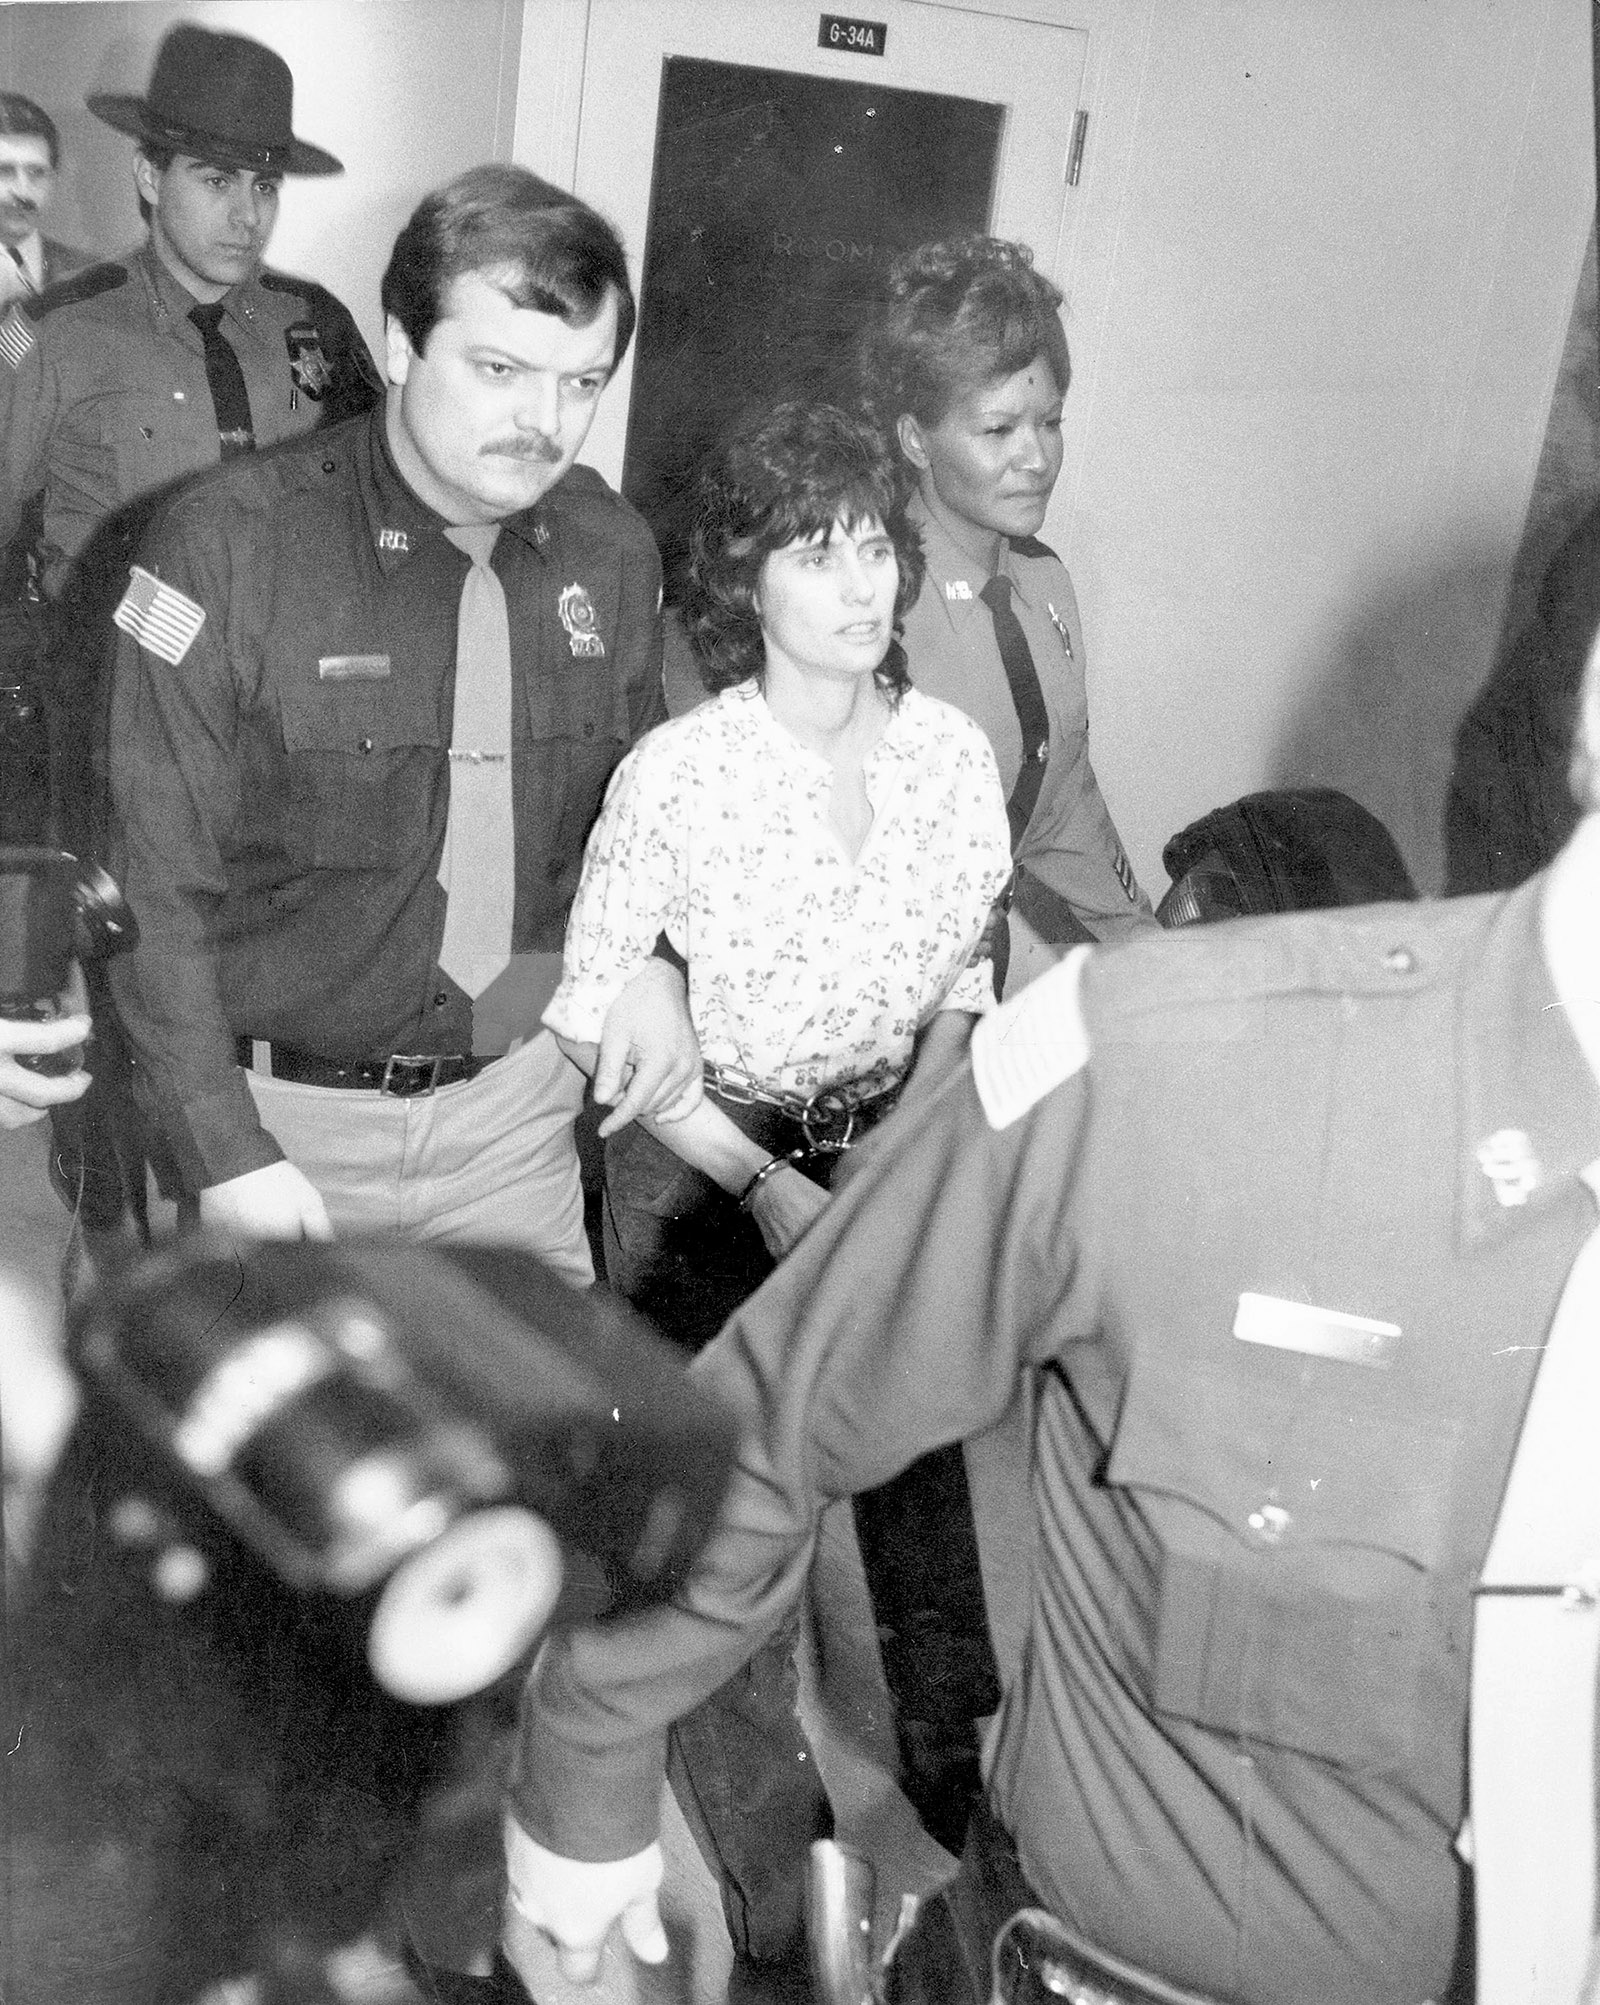 Kathy Boudin at an arraignment for her involvement in an armed robbery and shootout by members of the Black Liberation Army, New City, New York, 1981